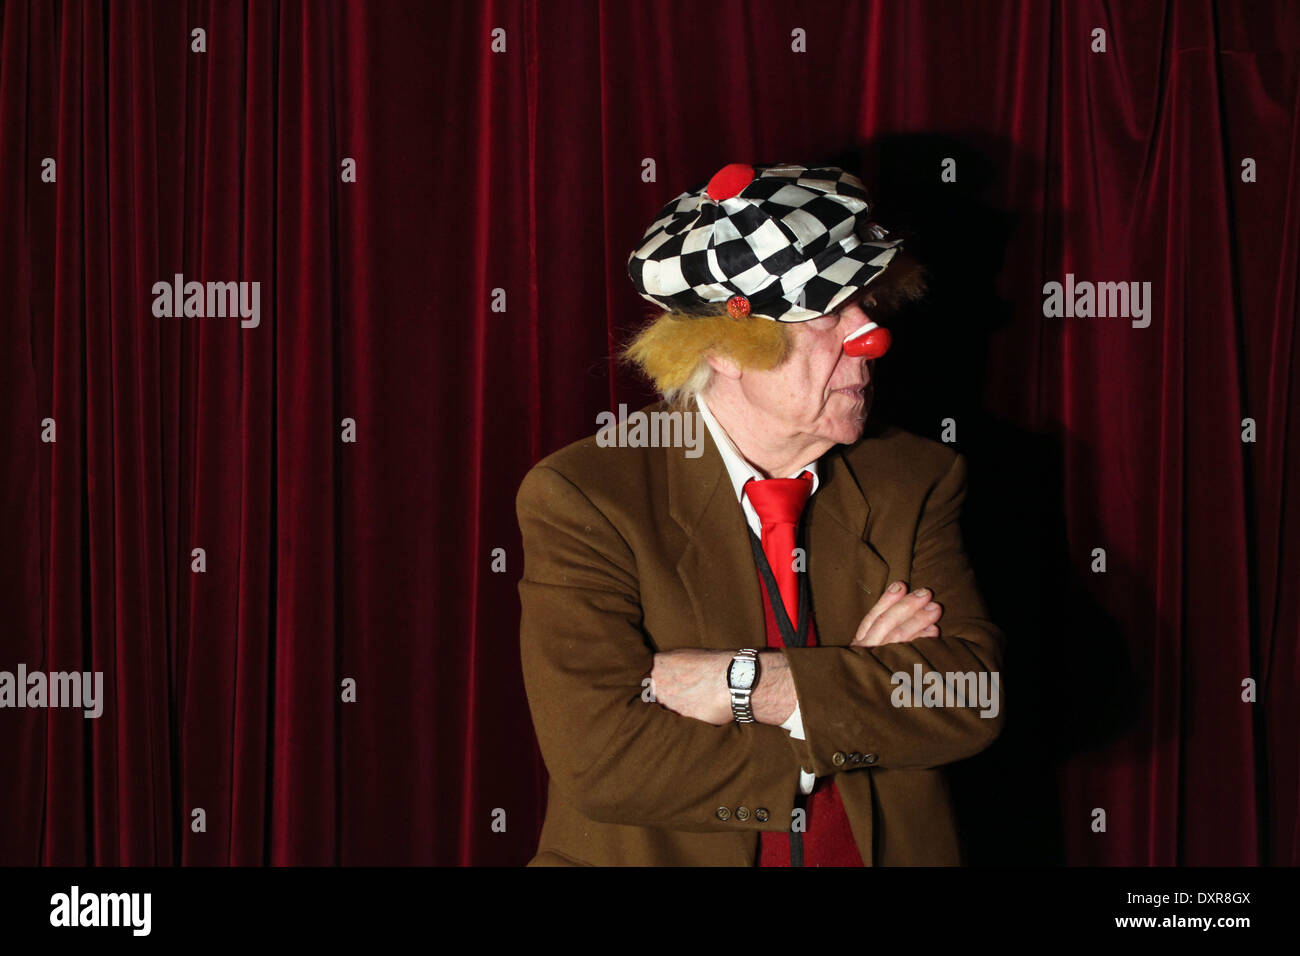 Famous Russian clown Oleg Popov, at age 83, prepares for his new show 'Magic Life' in Dresden, Germany. - Stock Image